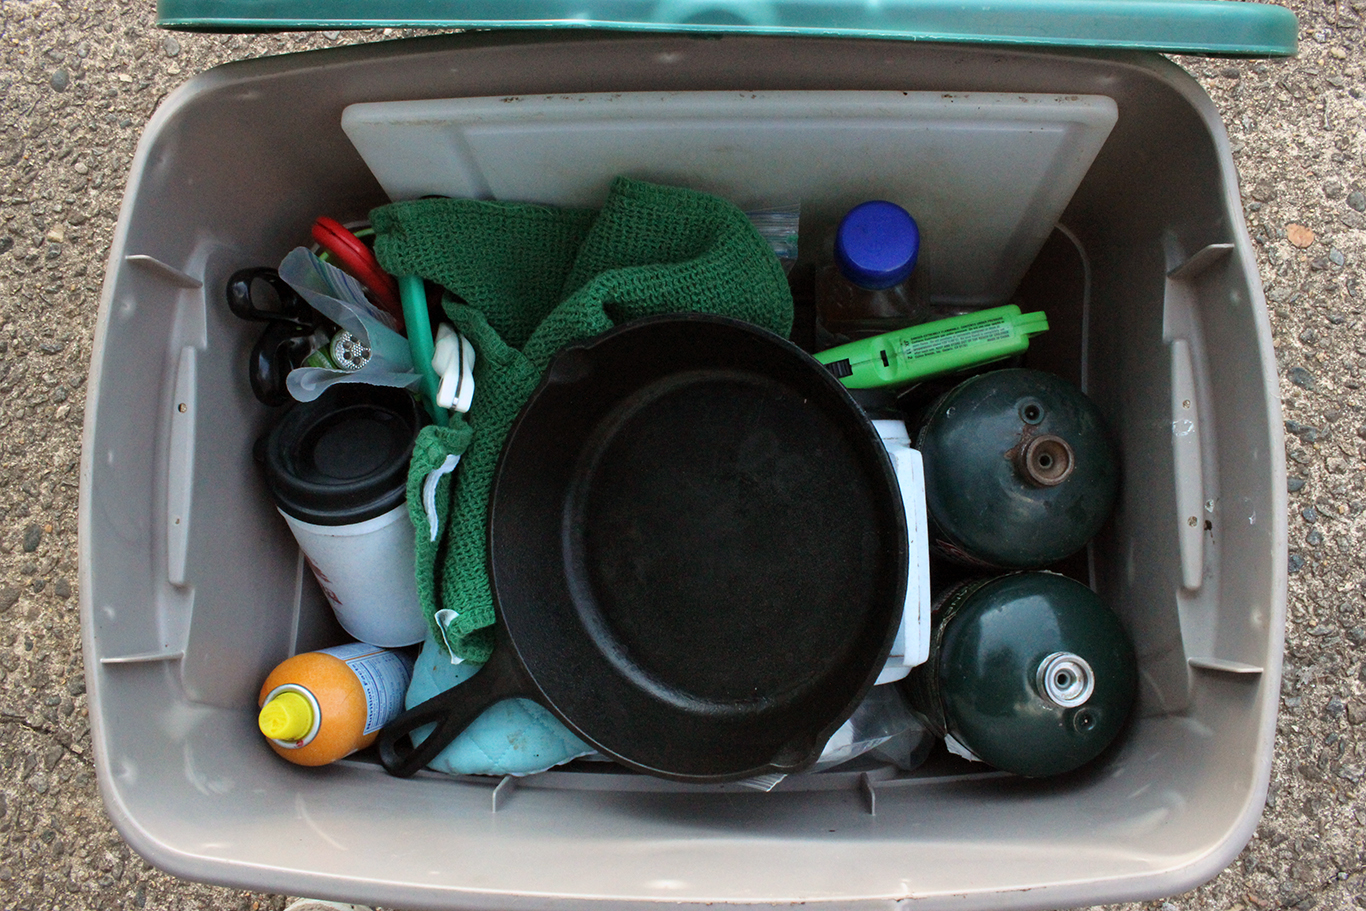 Store cooking supplies in a bin keep for travel on the road. Photo: Charli Kerns